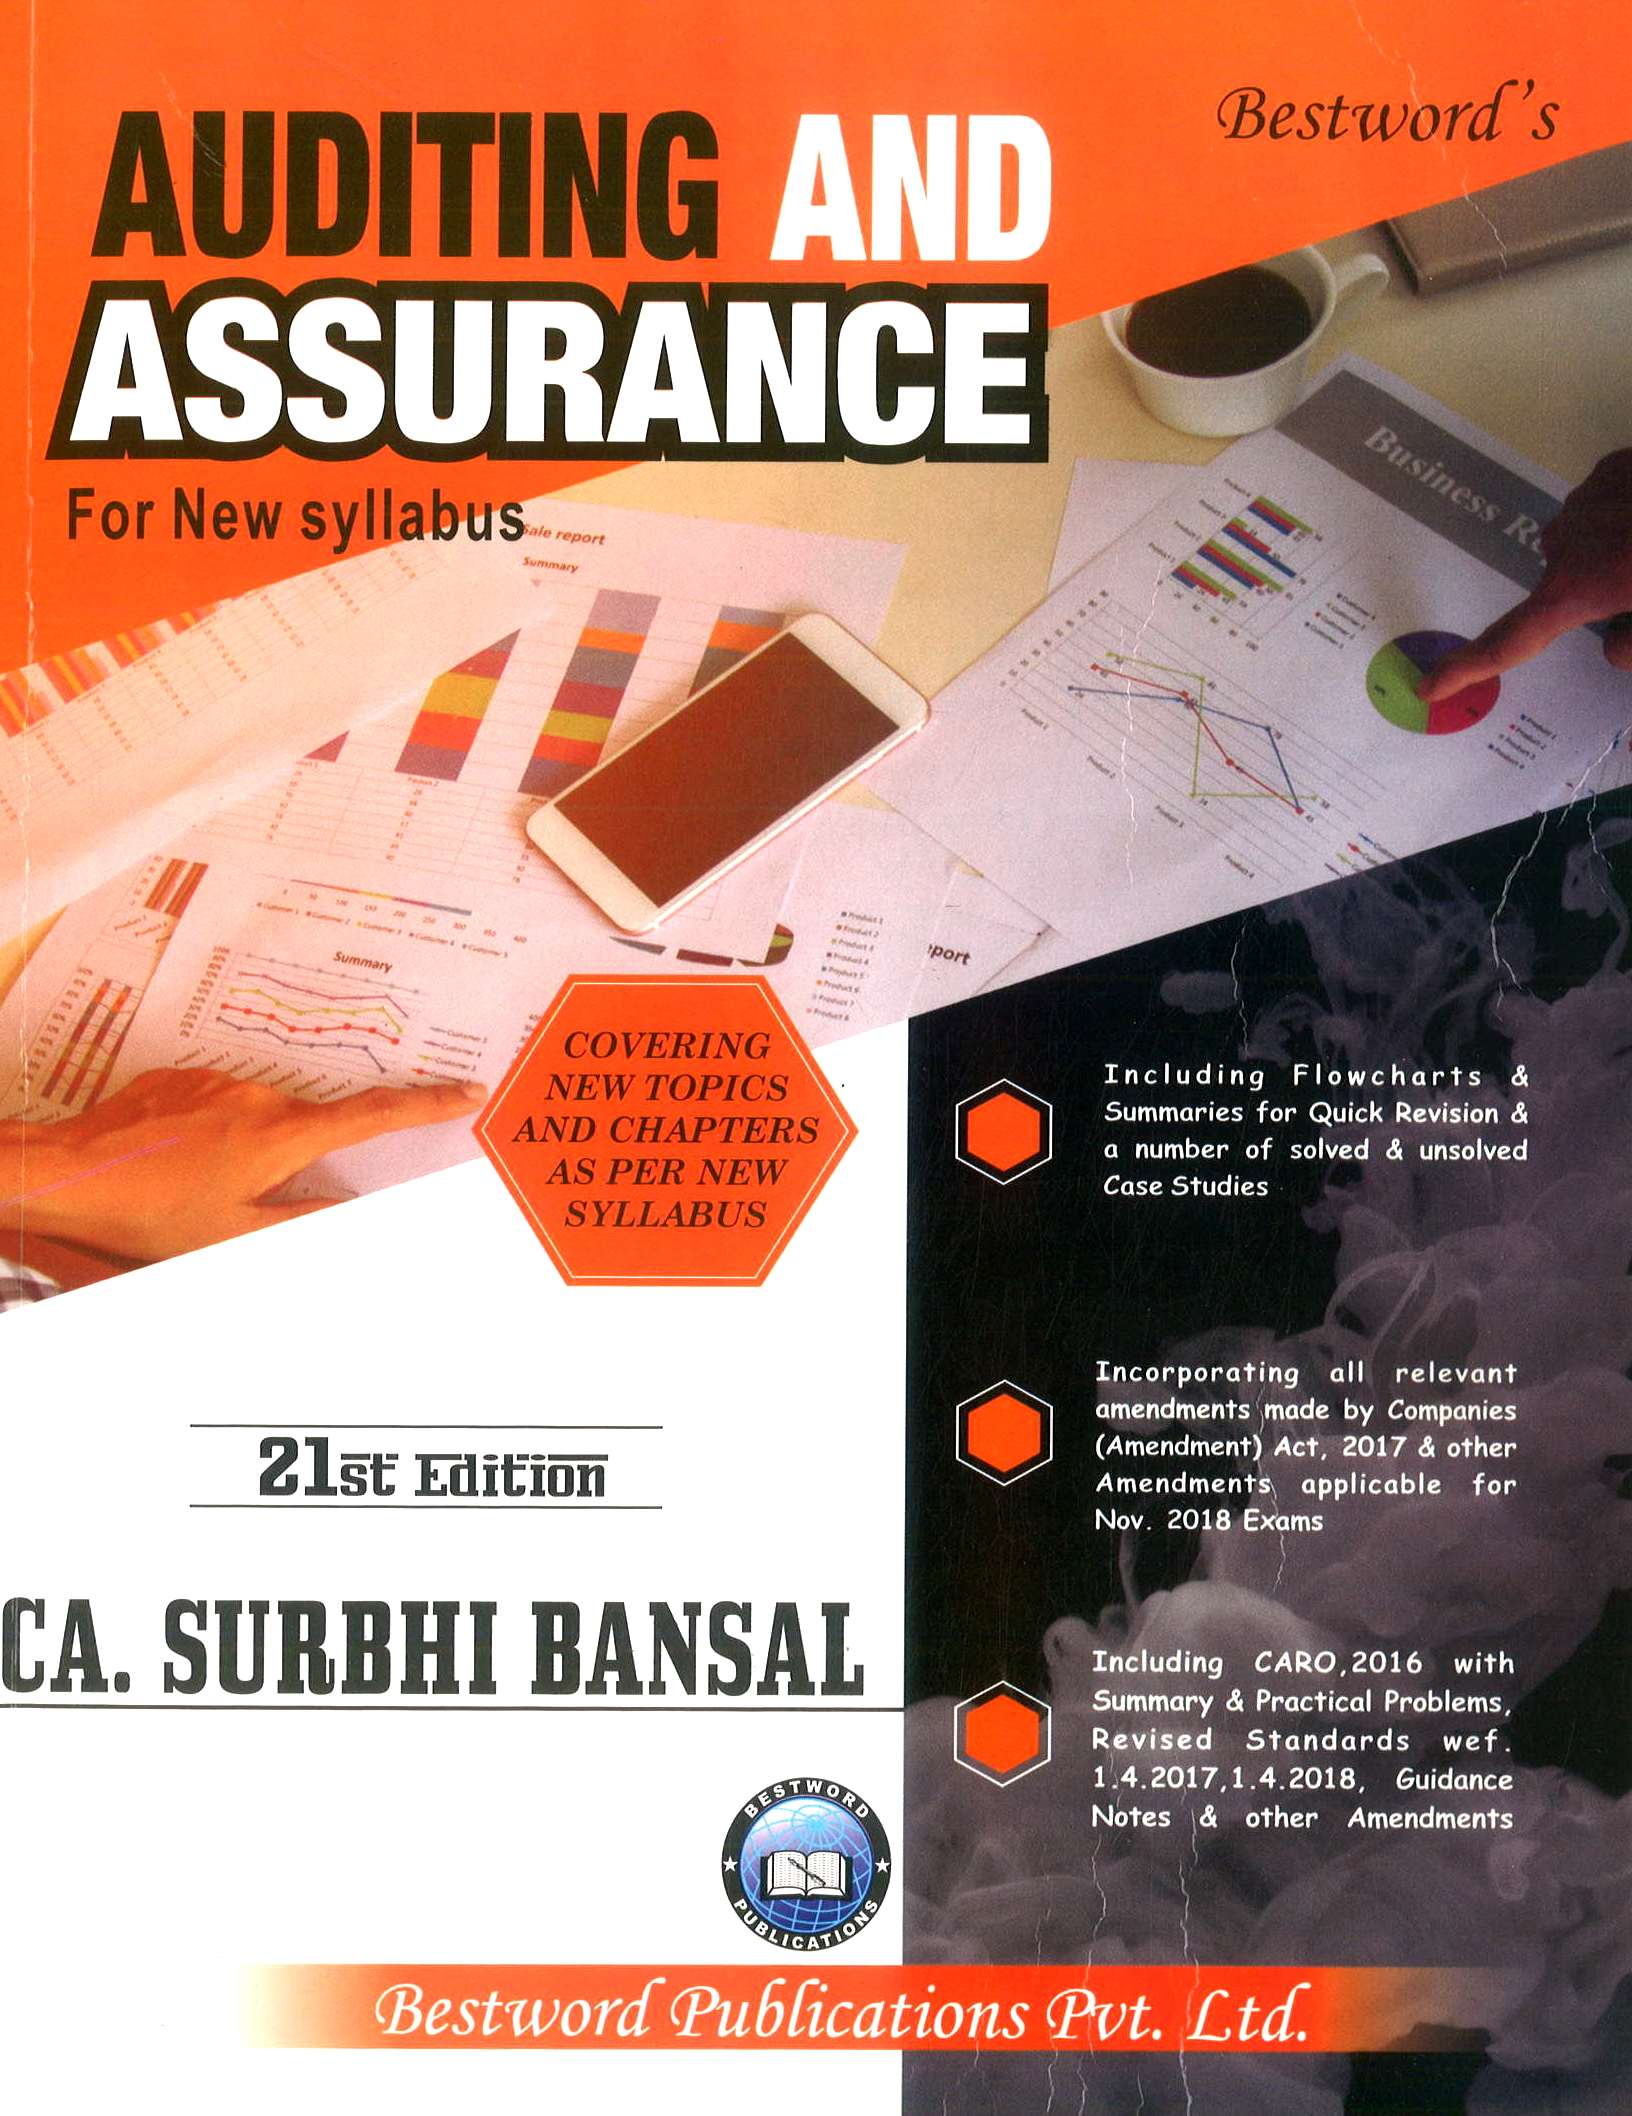 Bestword Auditing and Assurance for CA Intermediate (New Syllabus) by CA Surbhi bansal Edition 2018 for November 2018 Exam